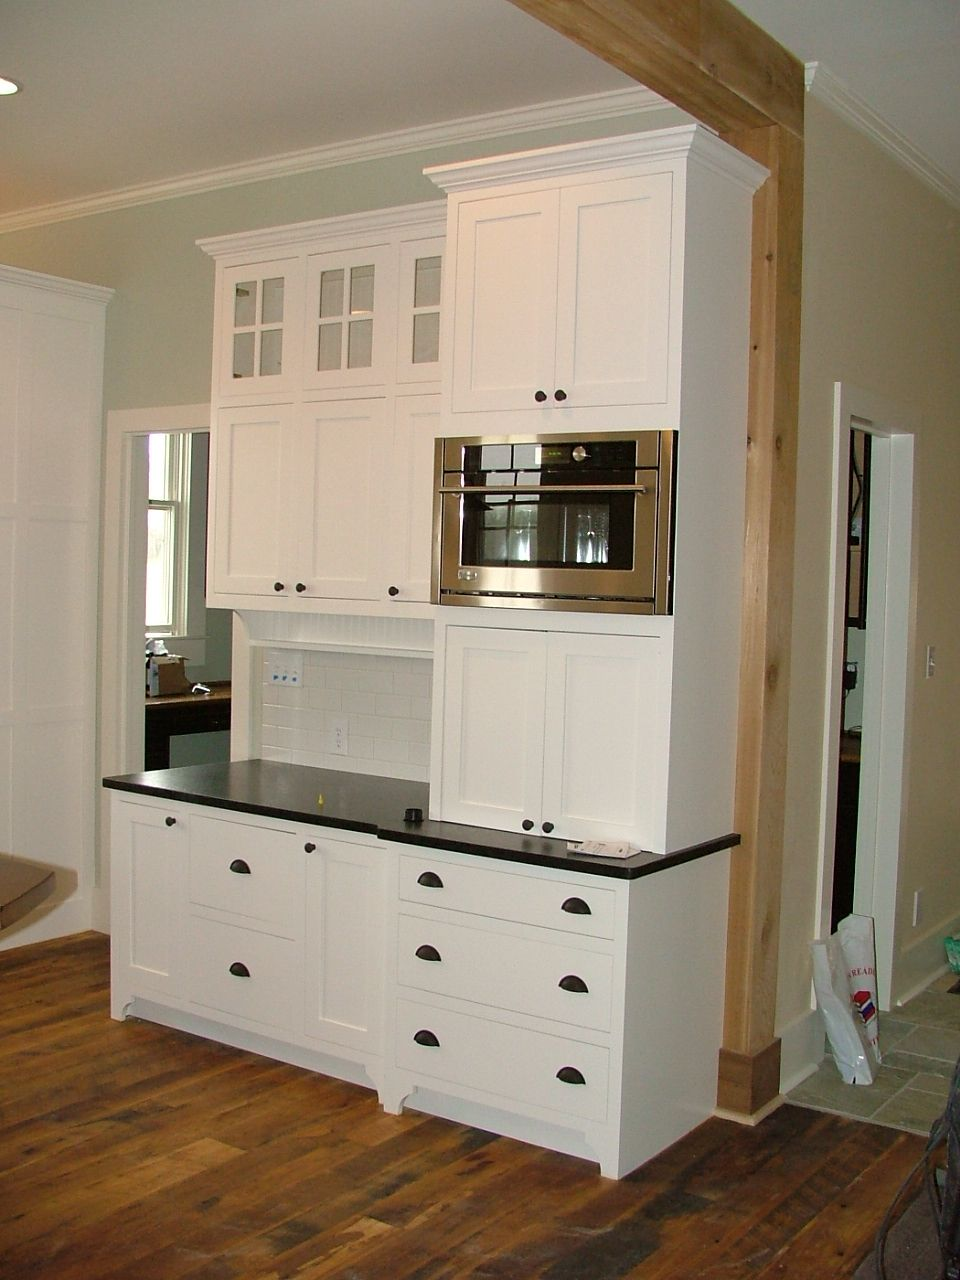 Best Built In Microwave Kitchen Redesign Built In Microwave 400 x 300